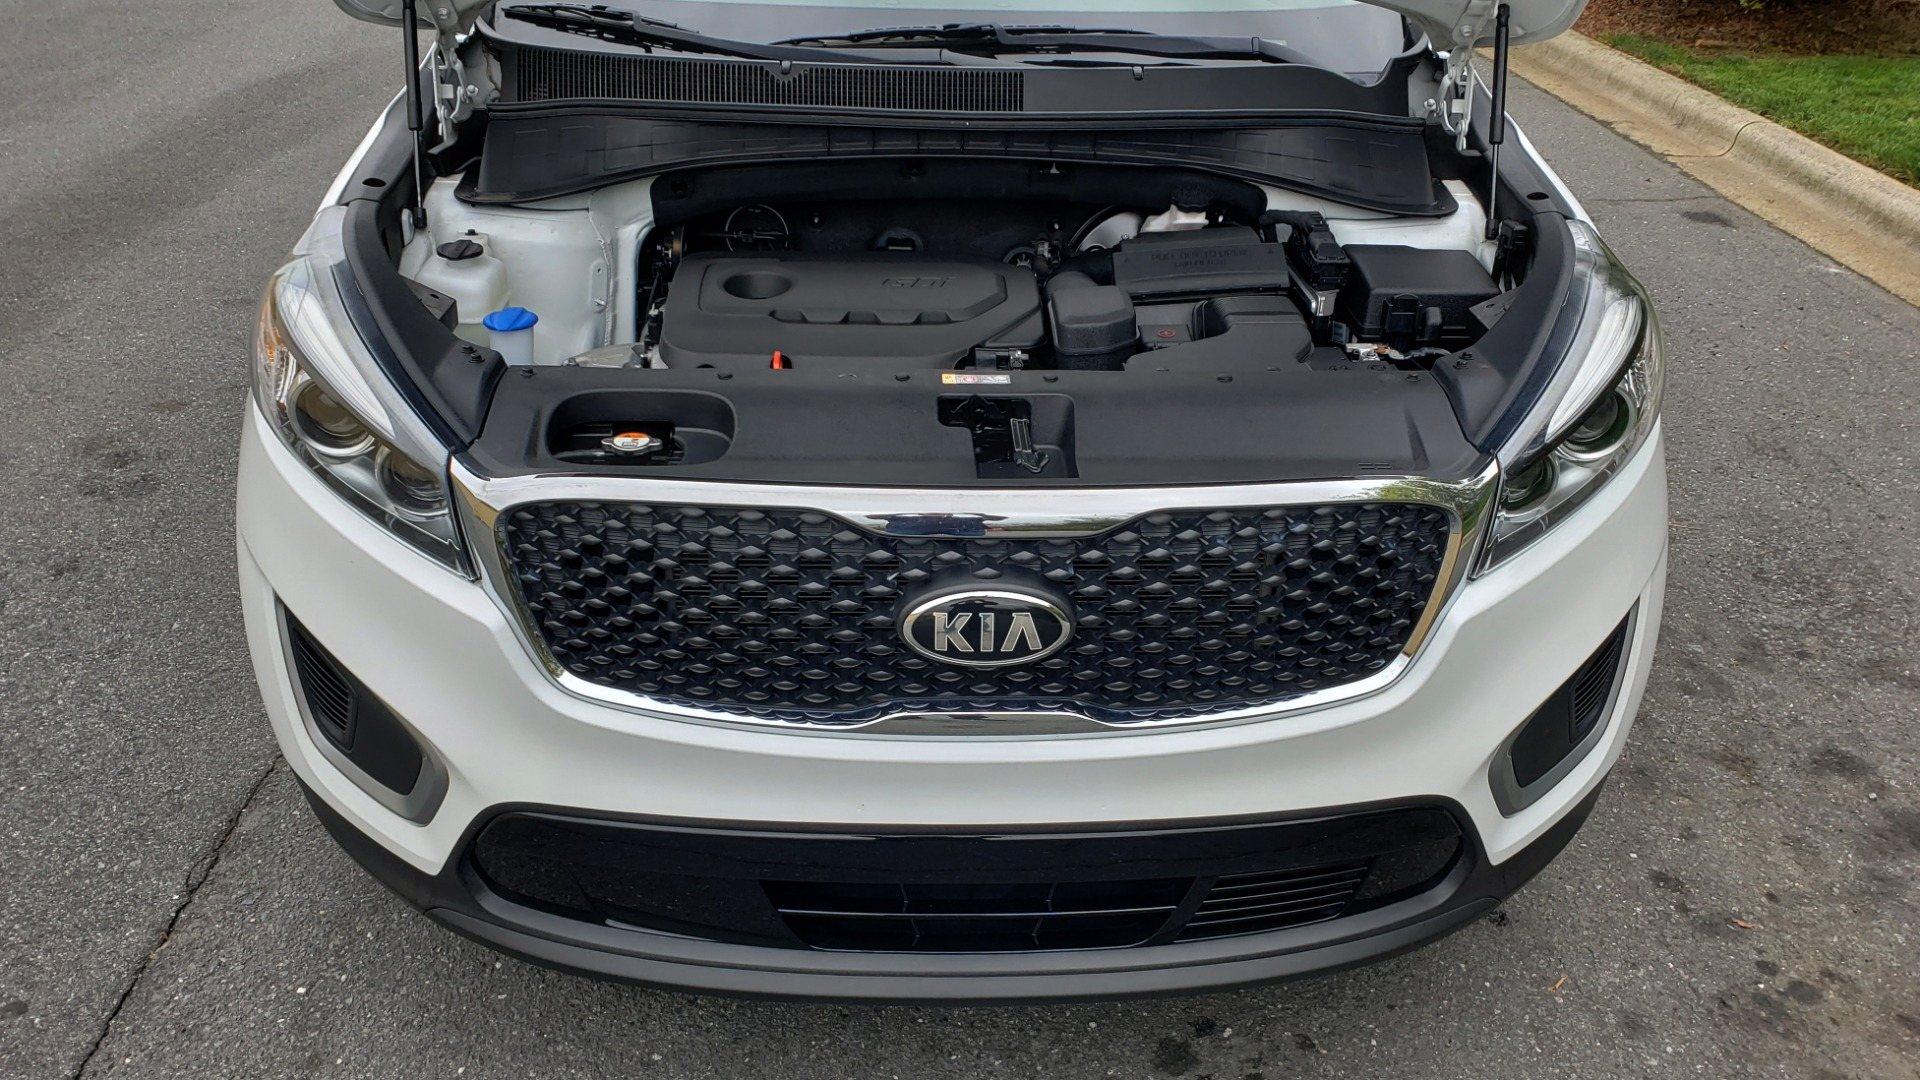 Used 2017 Kia SORENTO LX CONV PKG / FWD / ADVANCED TECH / 3-ROW for sale Sold at Formula Imports in Charlotte NC 28227 10